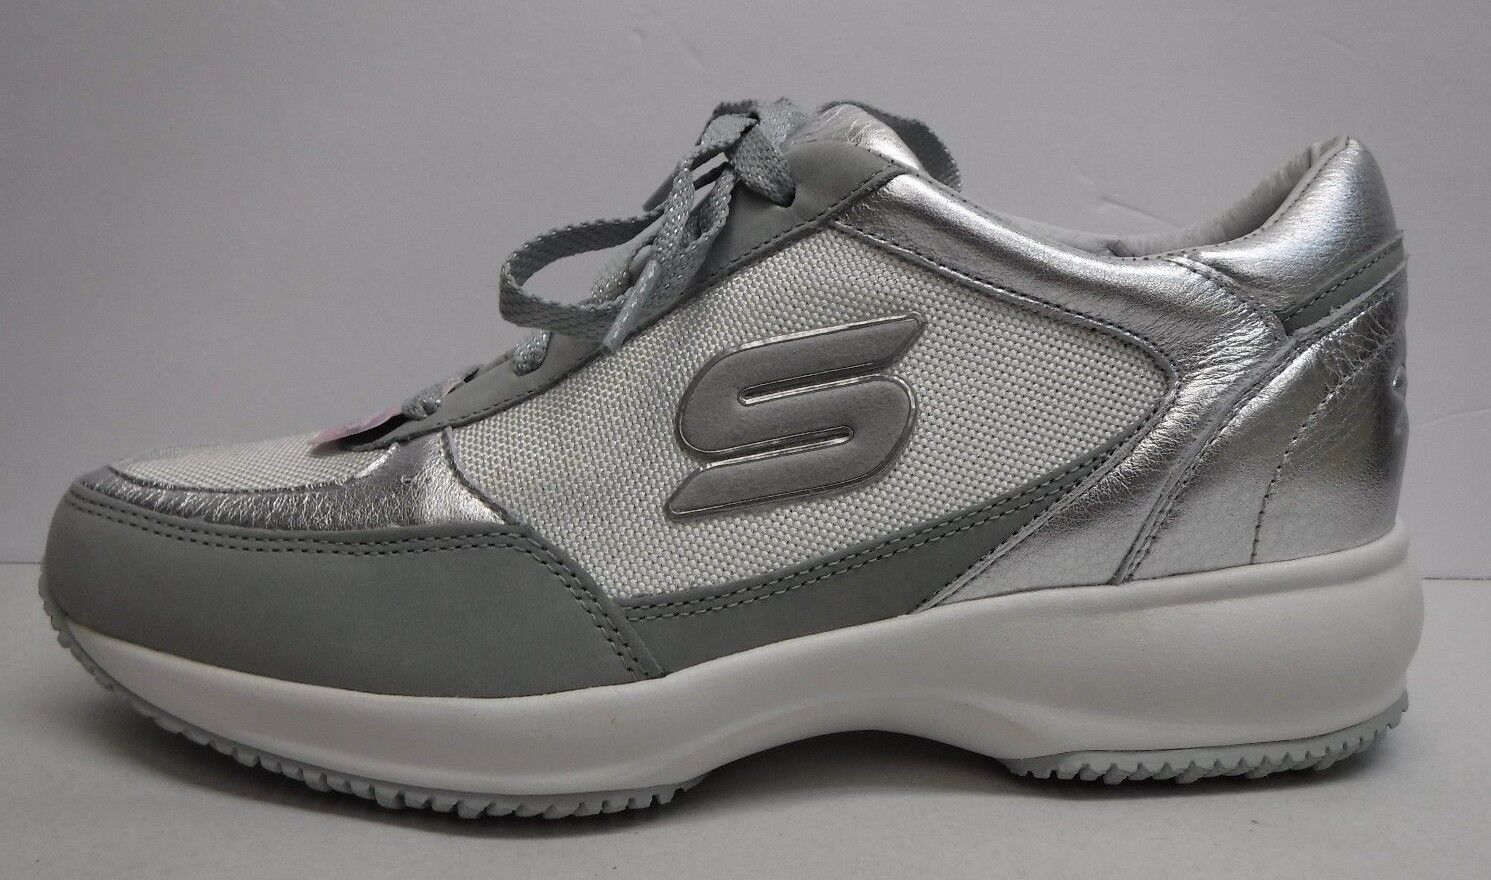 Skechers Wedge Fit Size 10 Silver Leather Sneakers New Womens Shoes